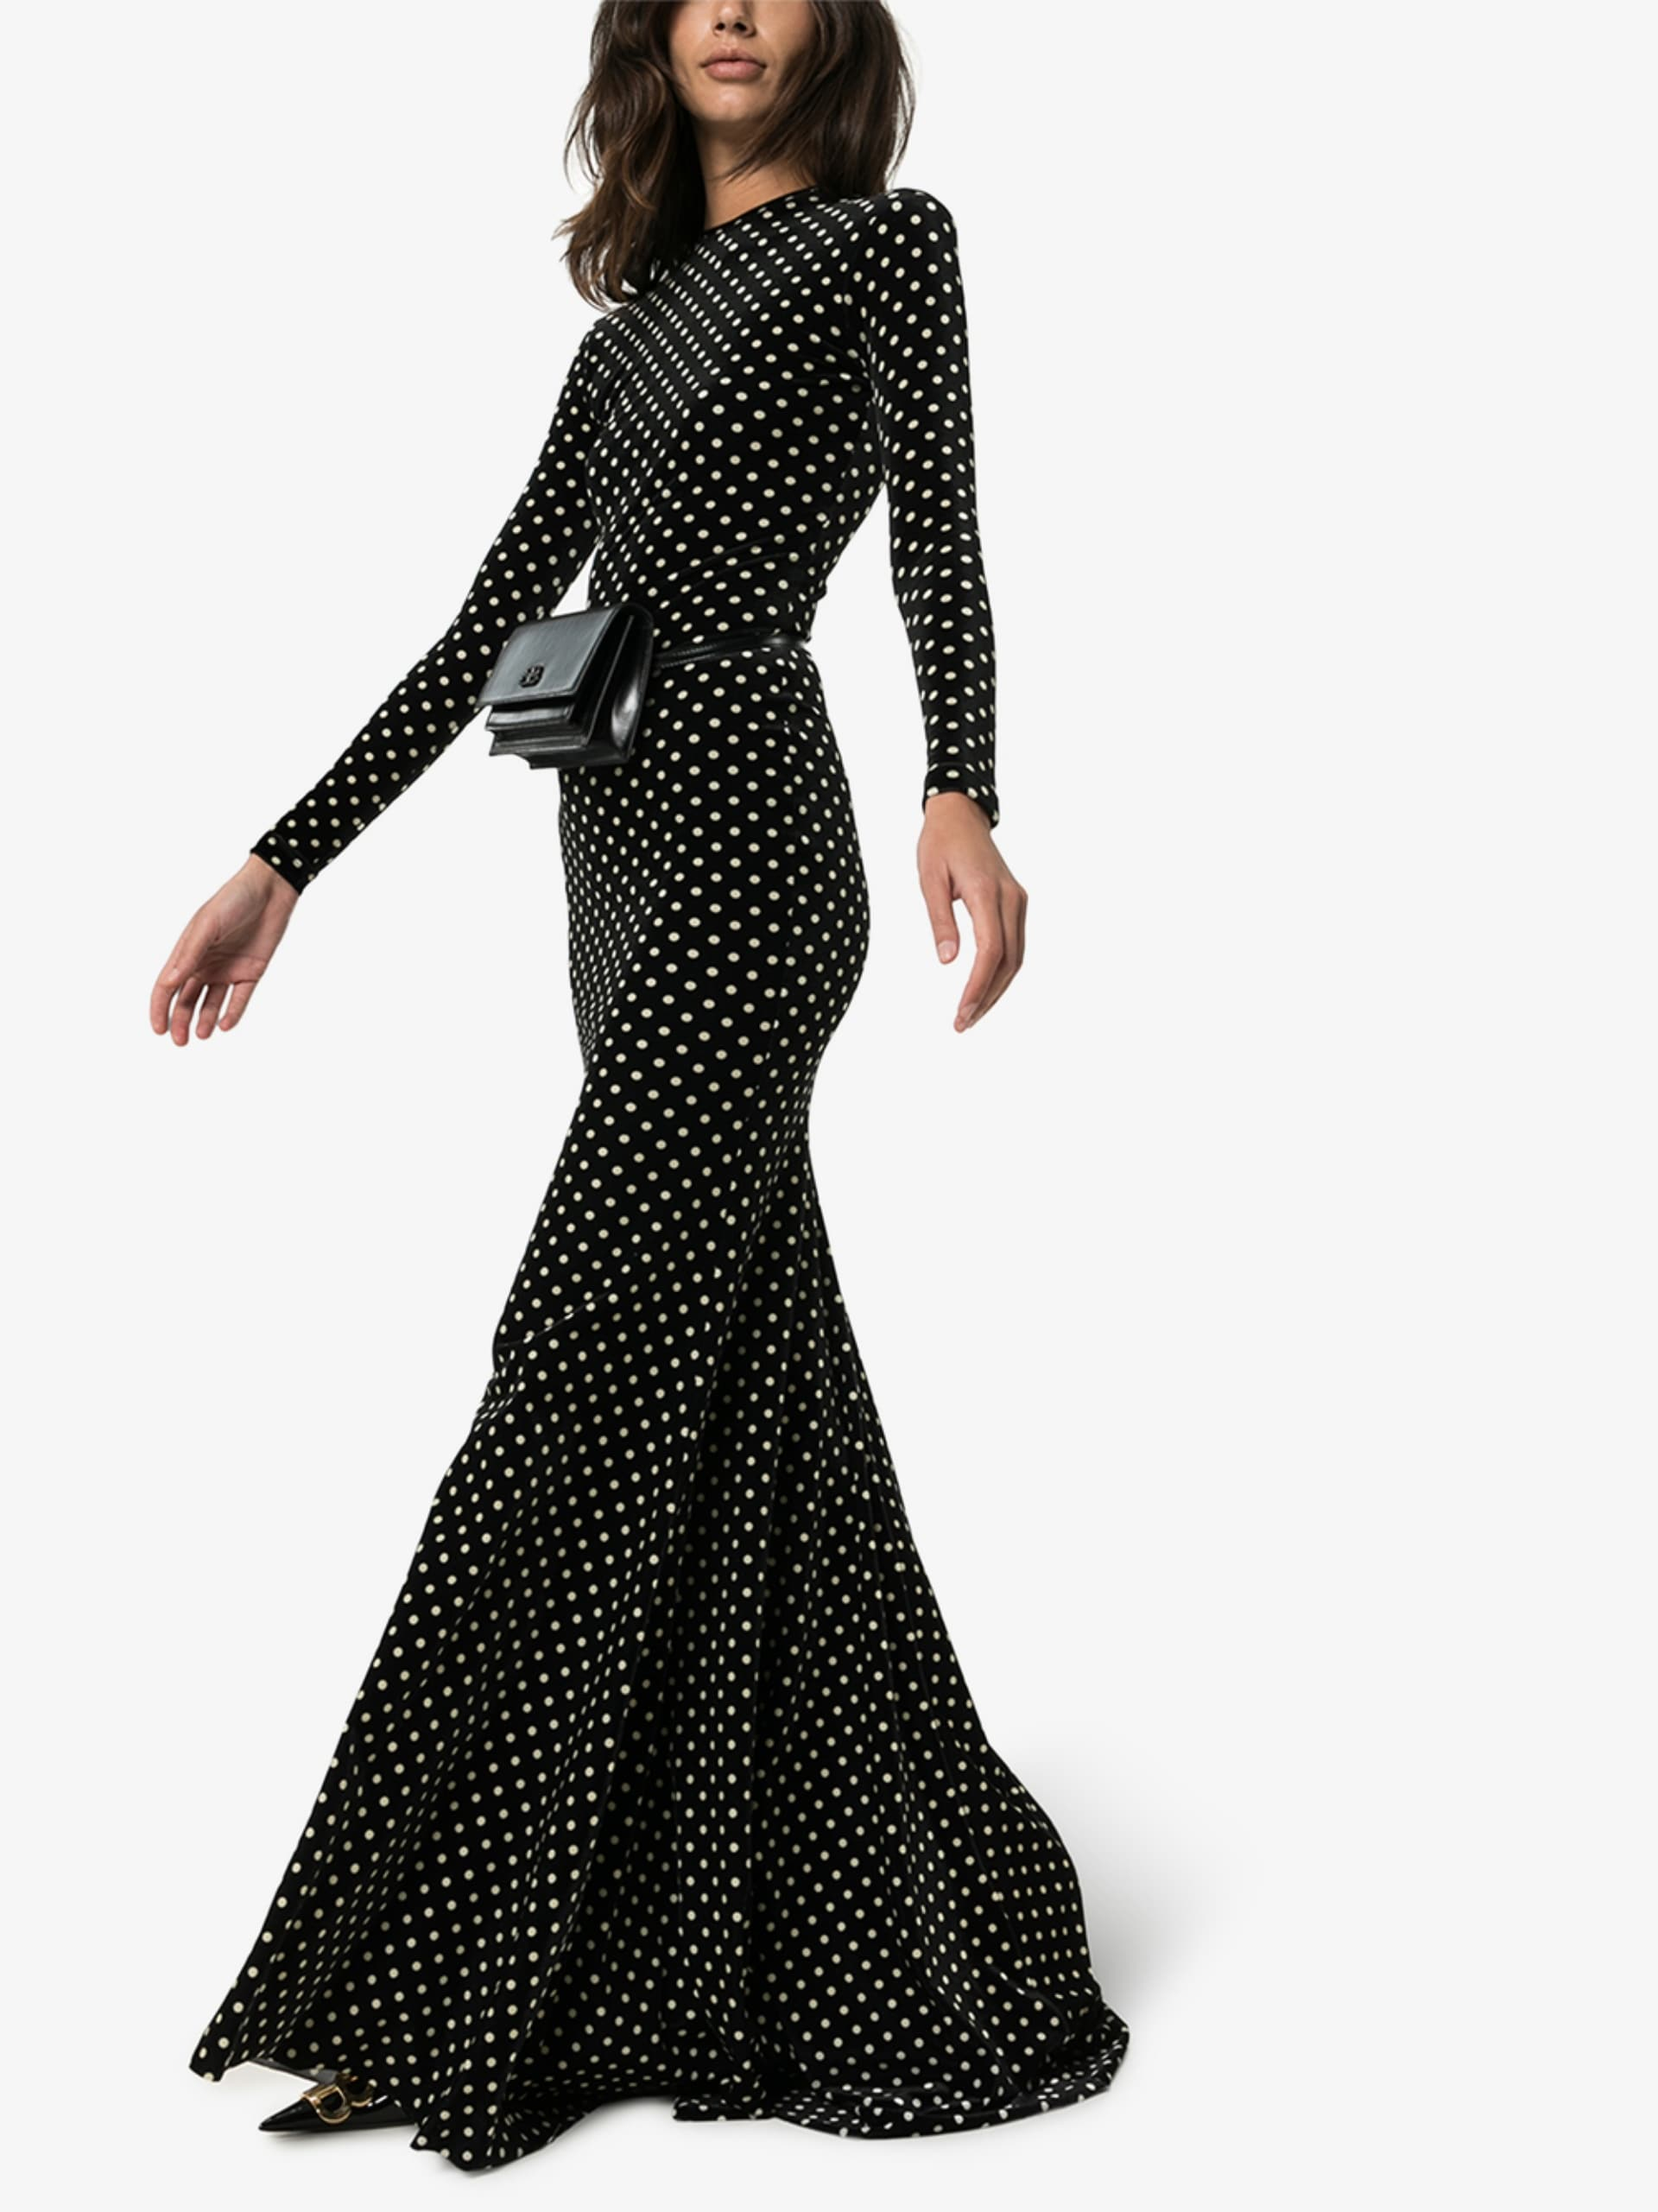 BALENCIAGA Velvet Polka Dot Maxi Dress